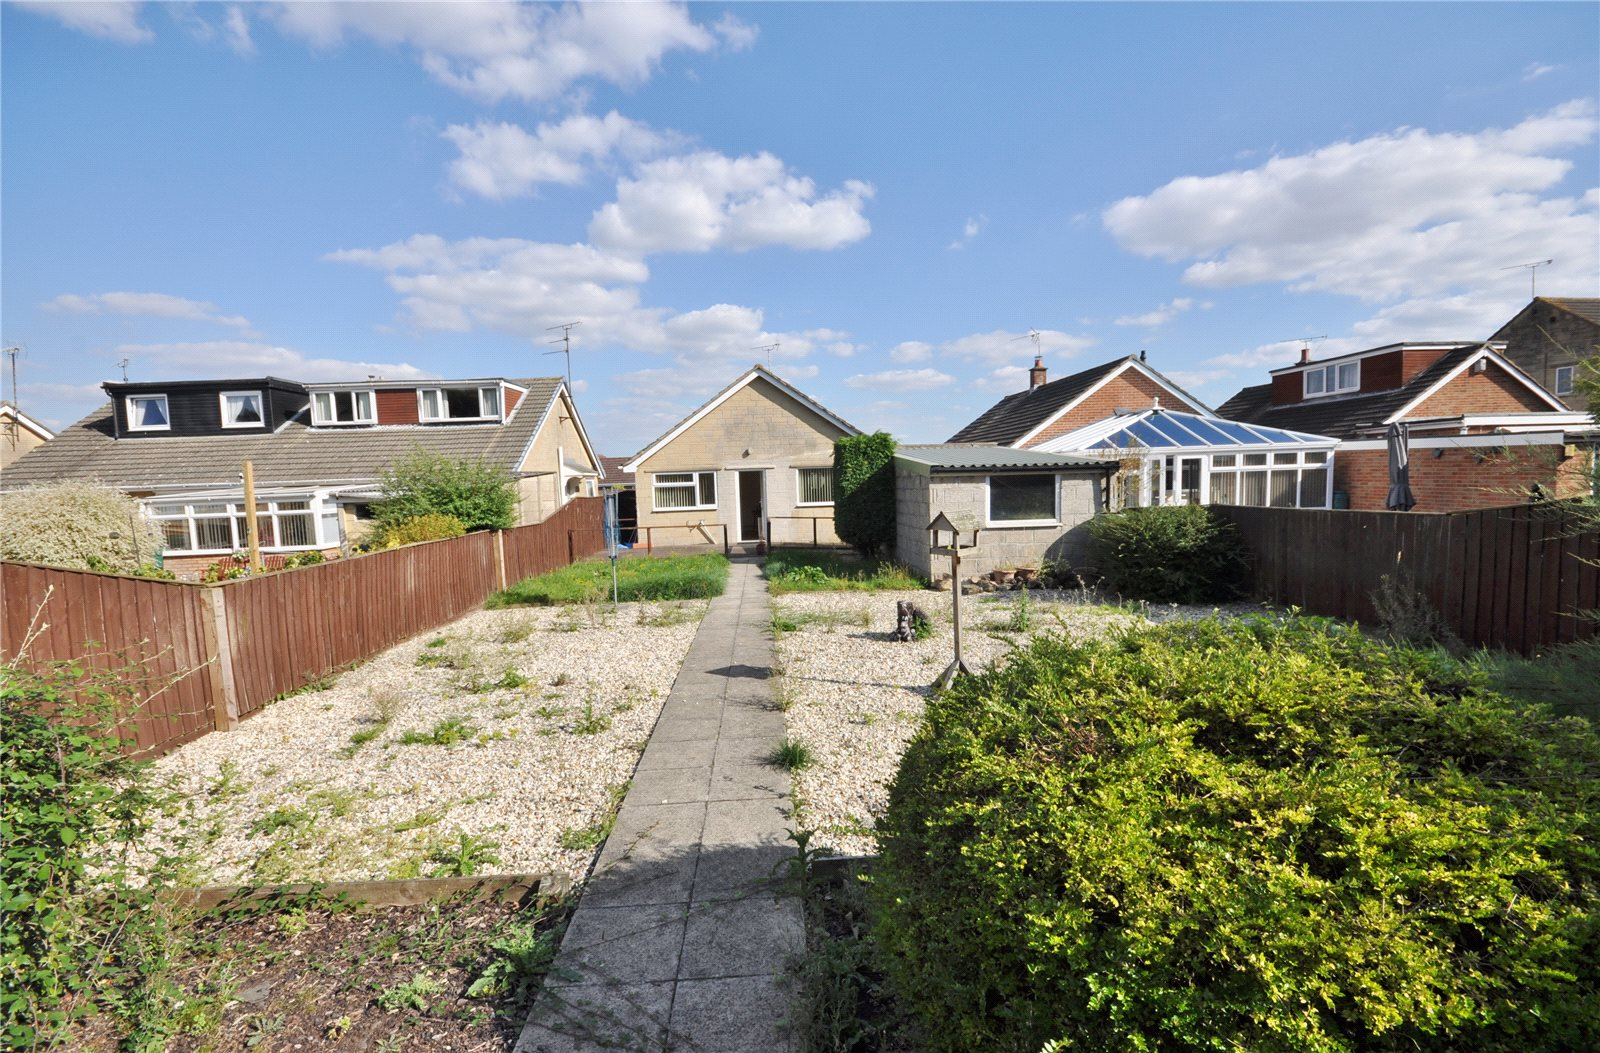 Property For Sale In Nythe Swindon